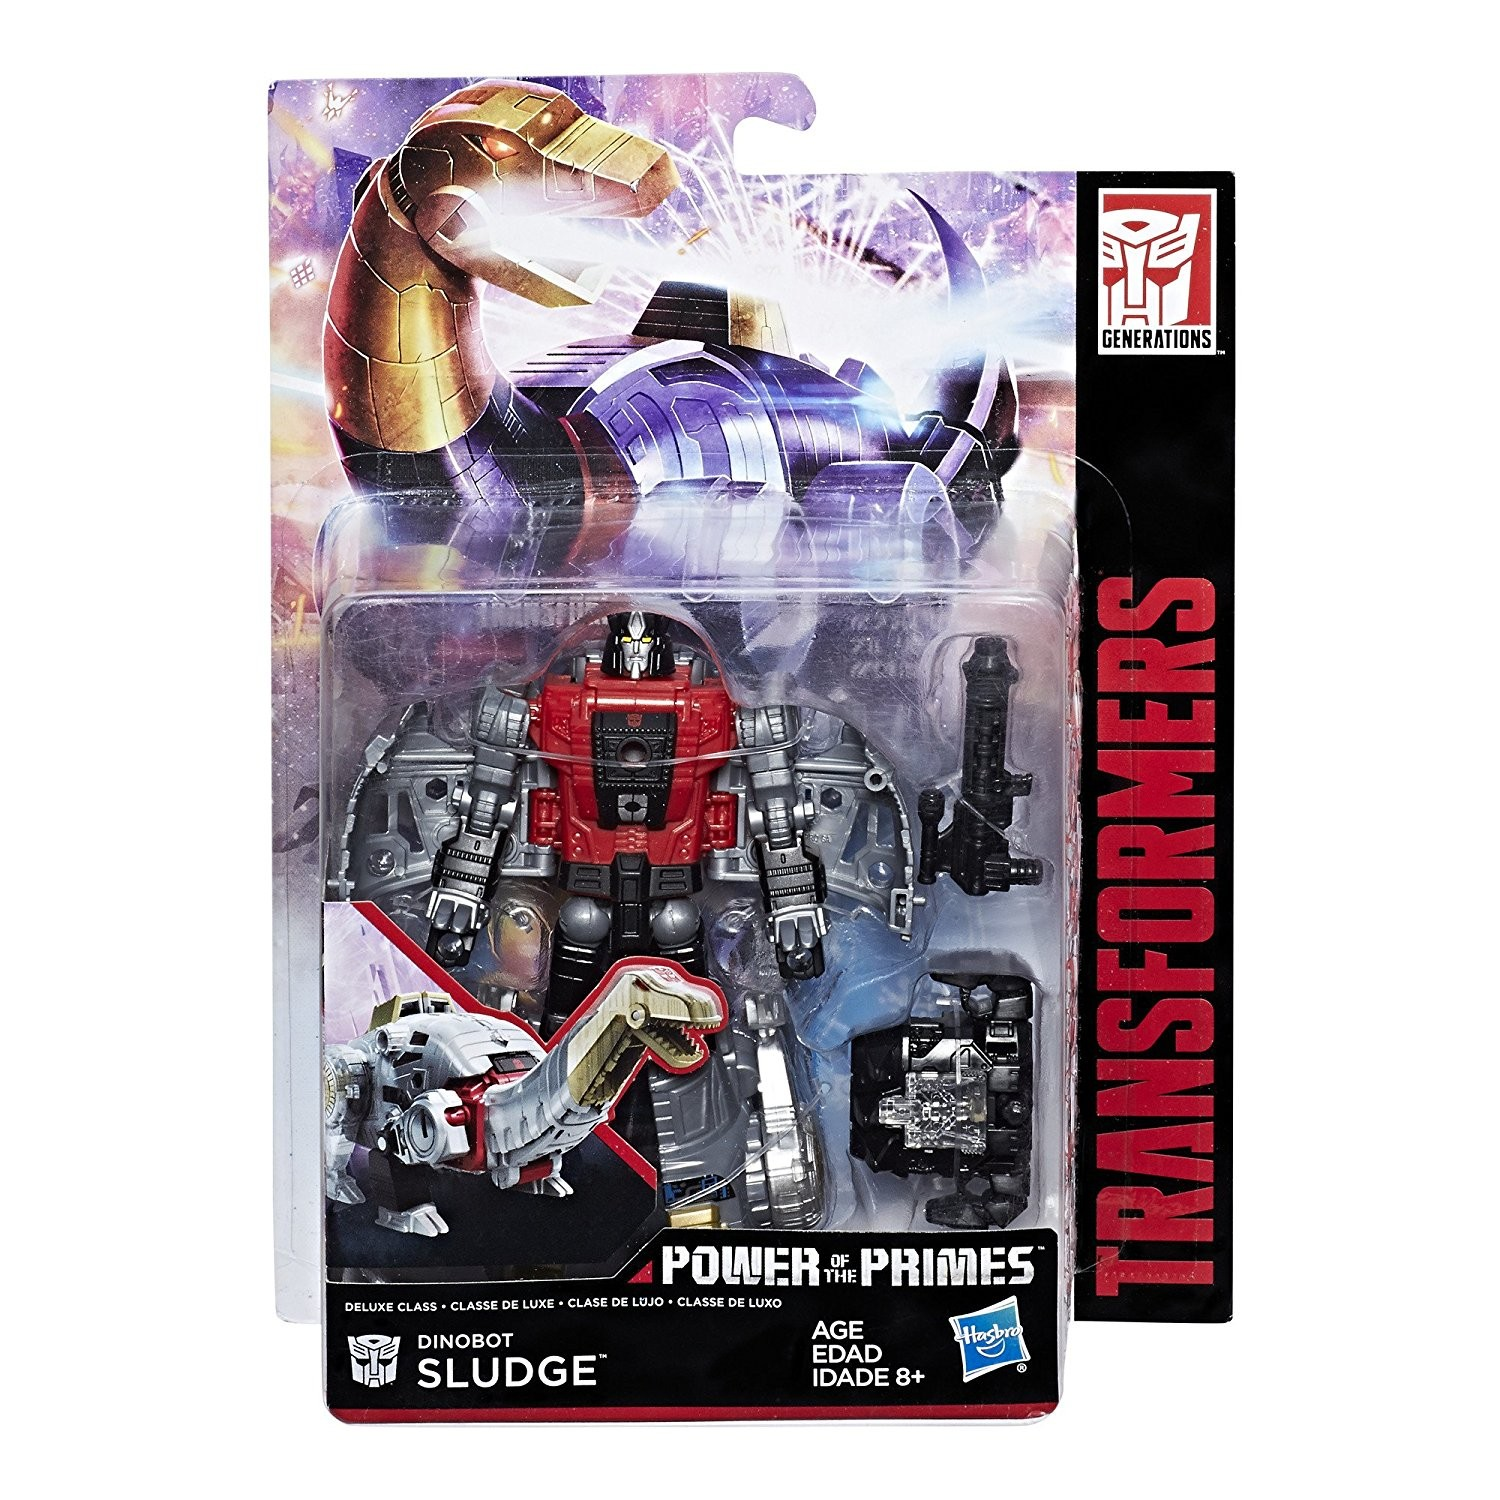 Transformers News: Wave 2 and 3 Figures of Transformers Power of the Primes Confirmed in Amazon Listings with New Image